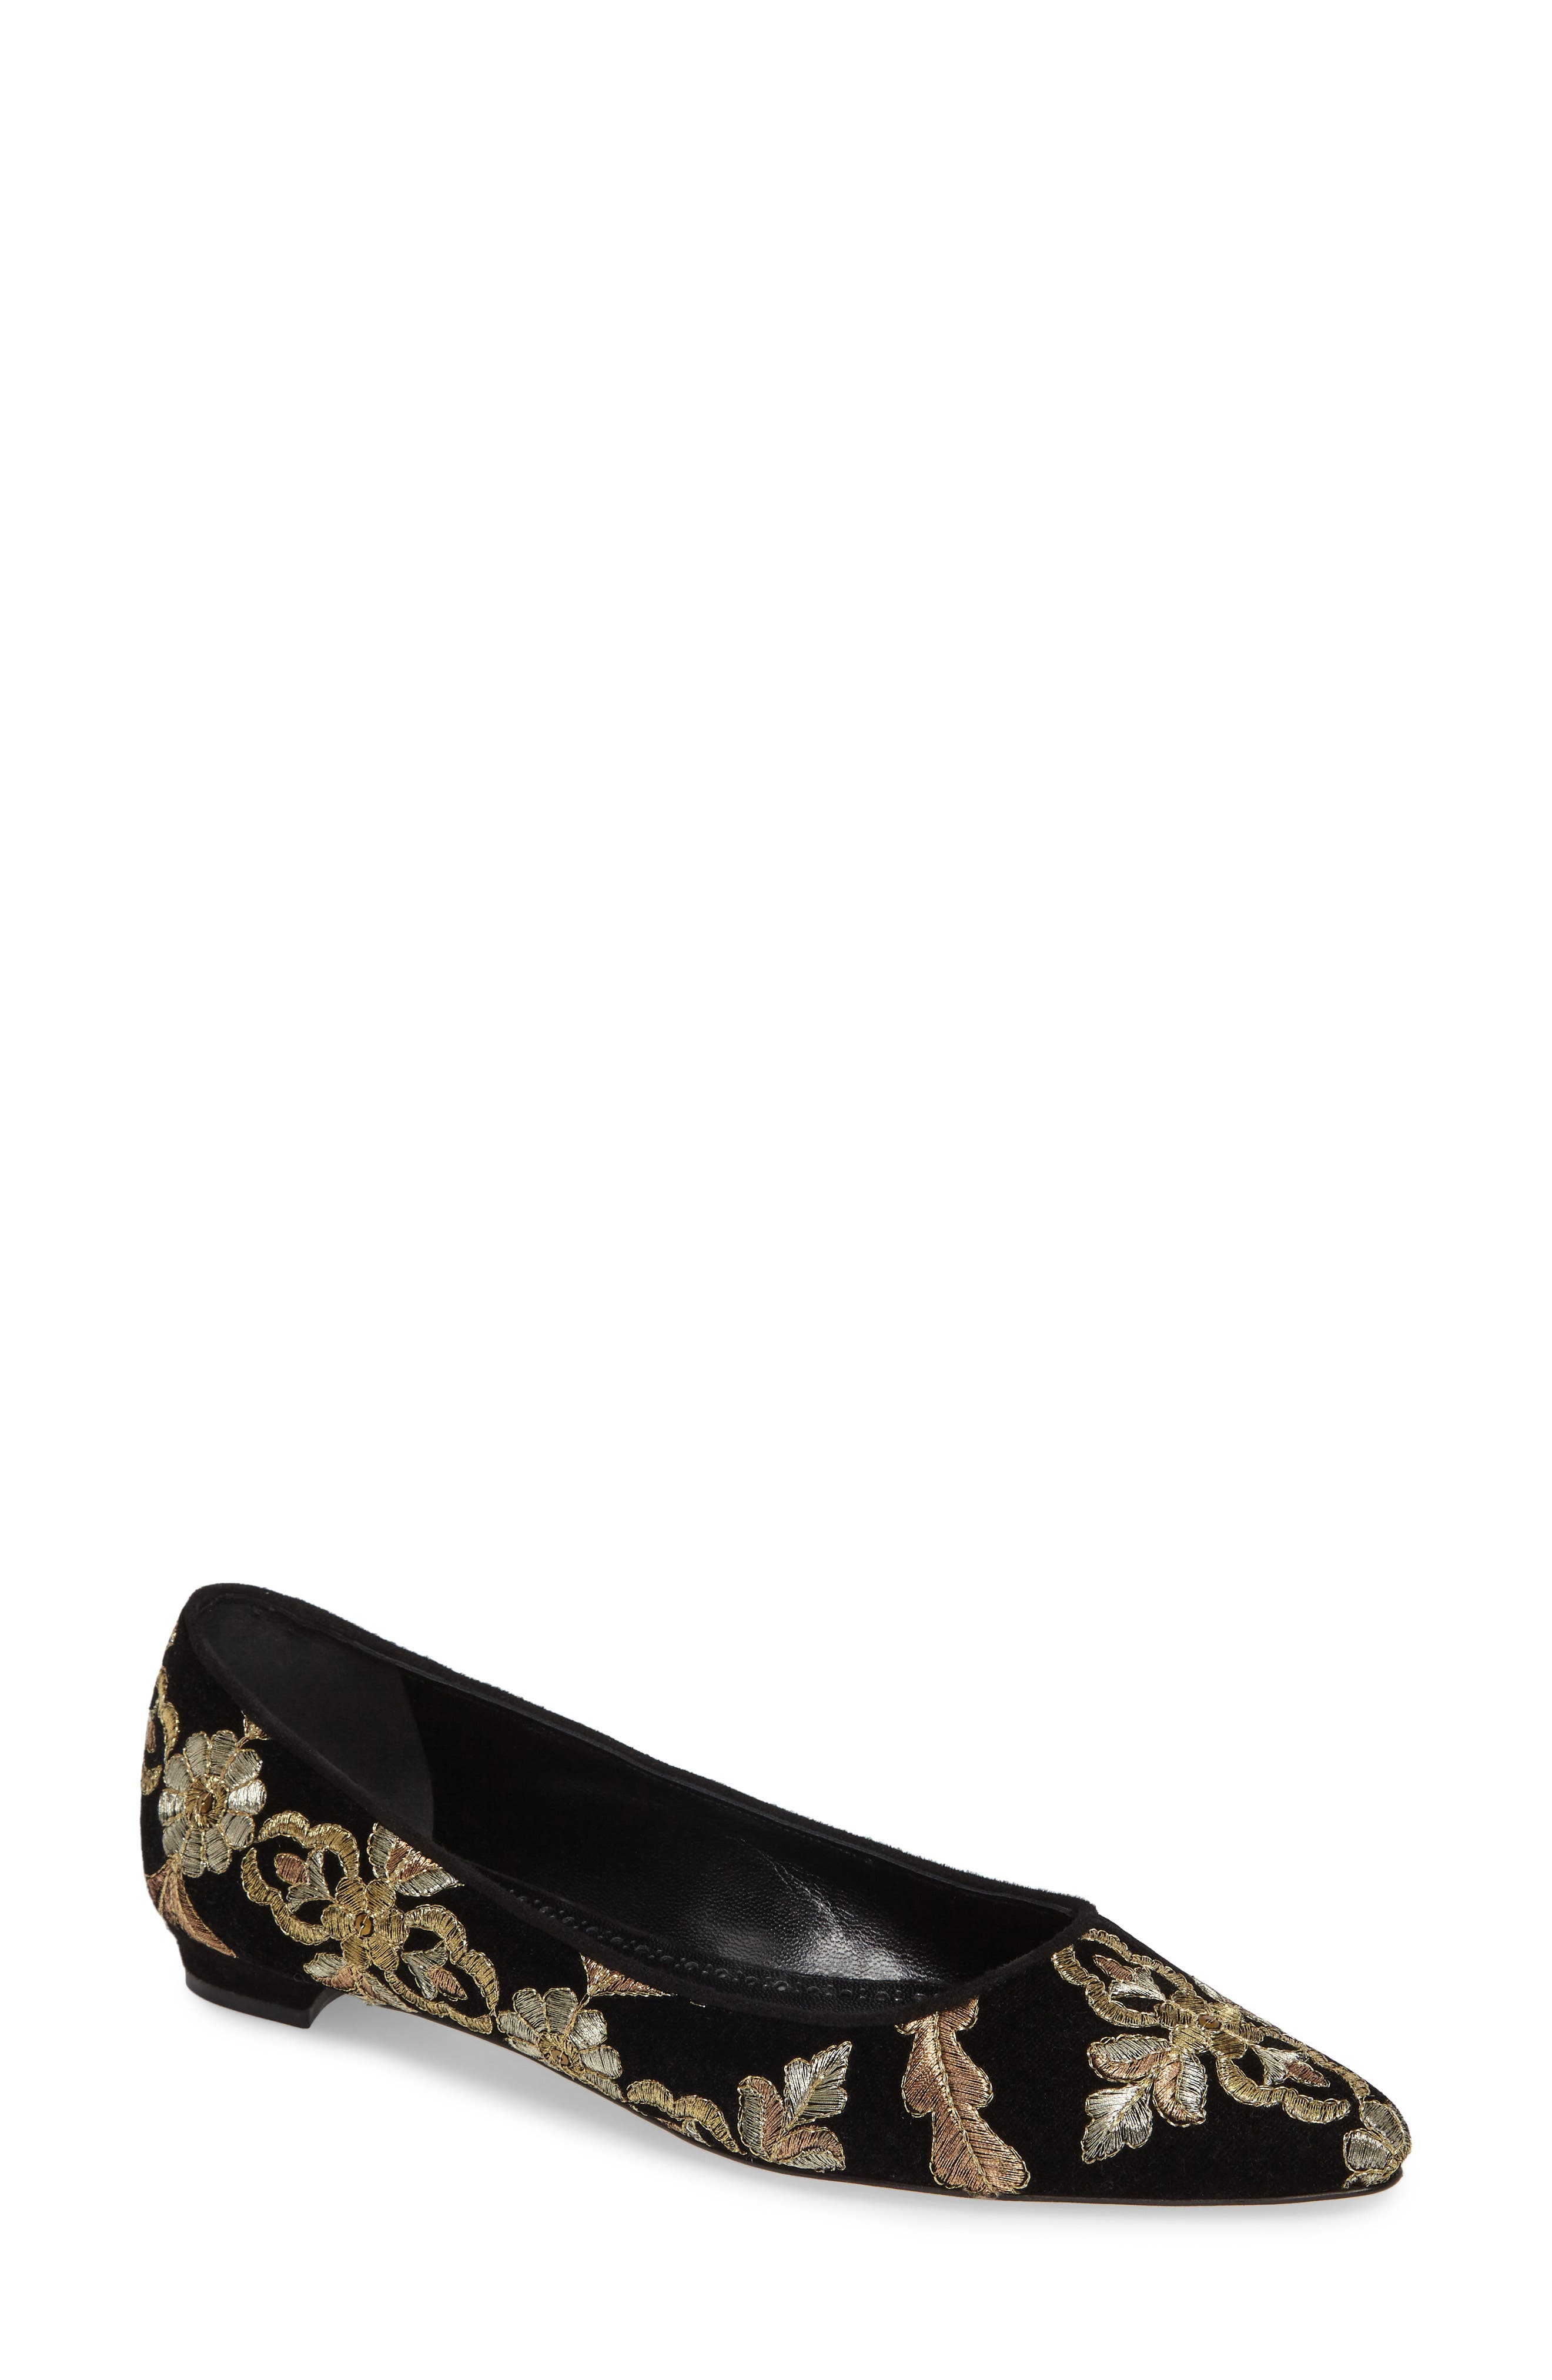 Main Image - Manolo Blahnik Tittermo Floral Embroidered Ballet Flat (Women)